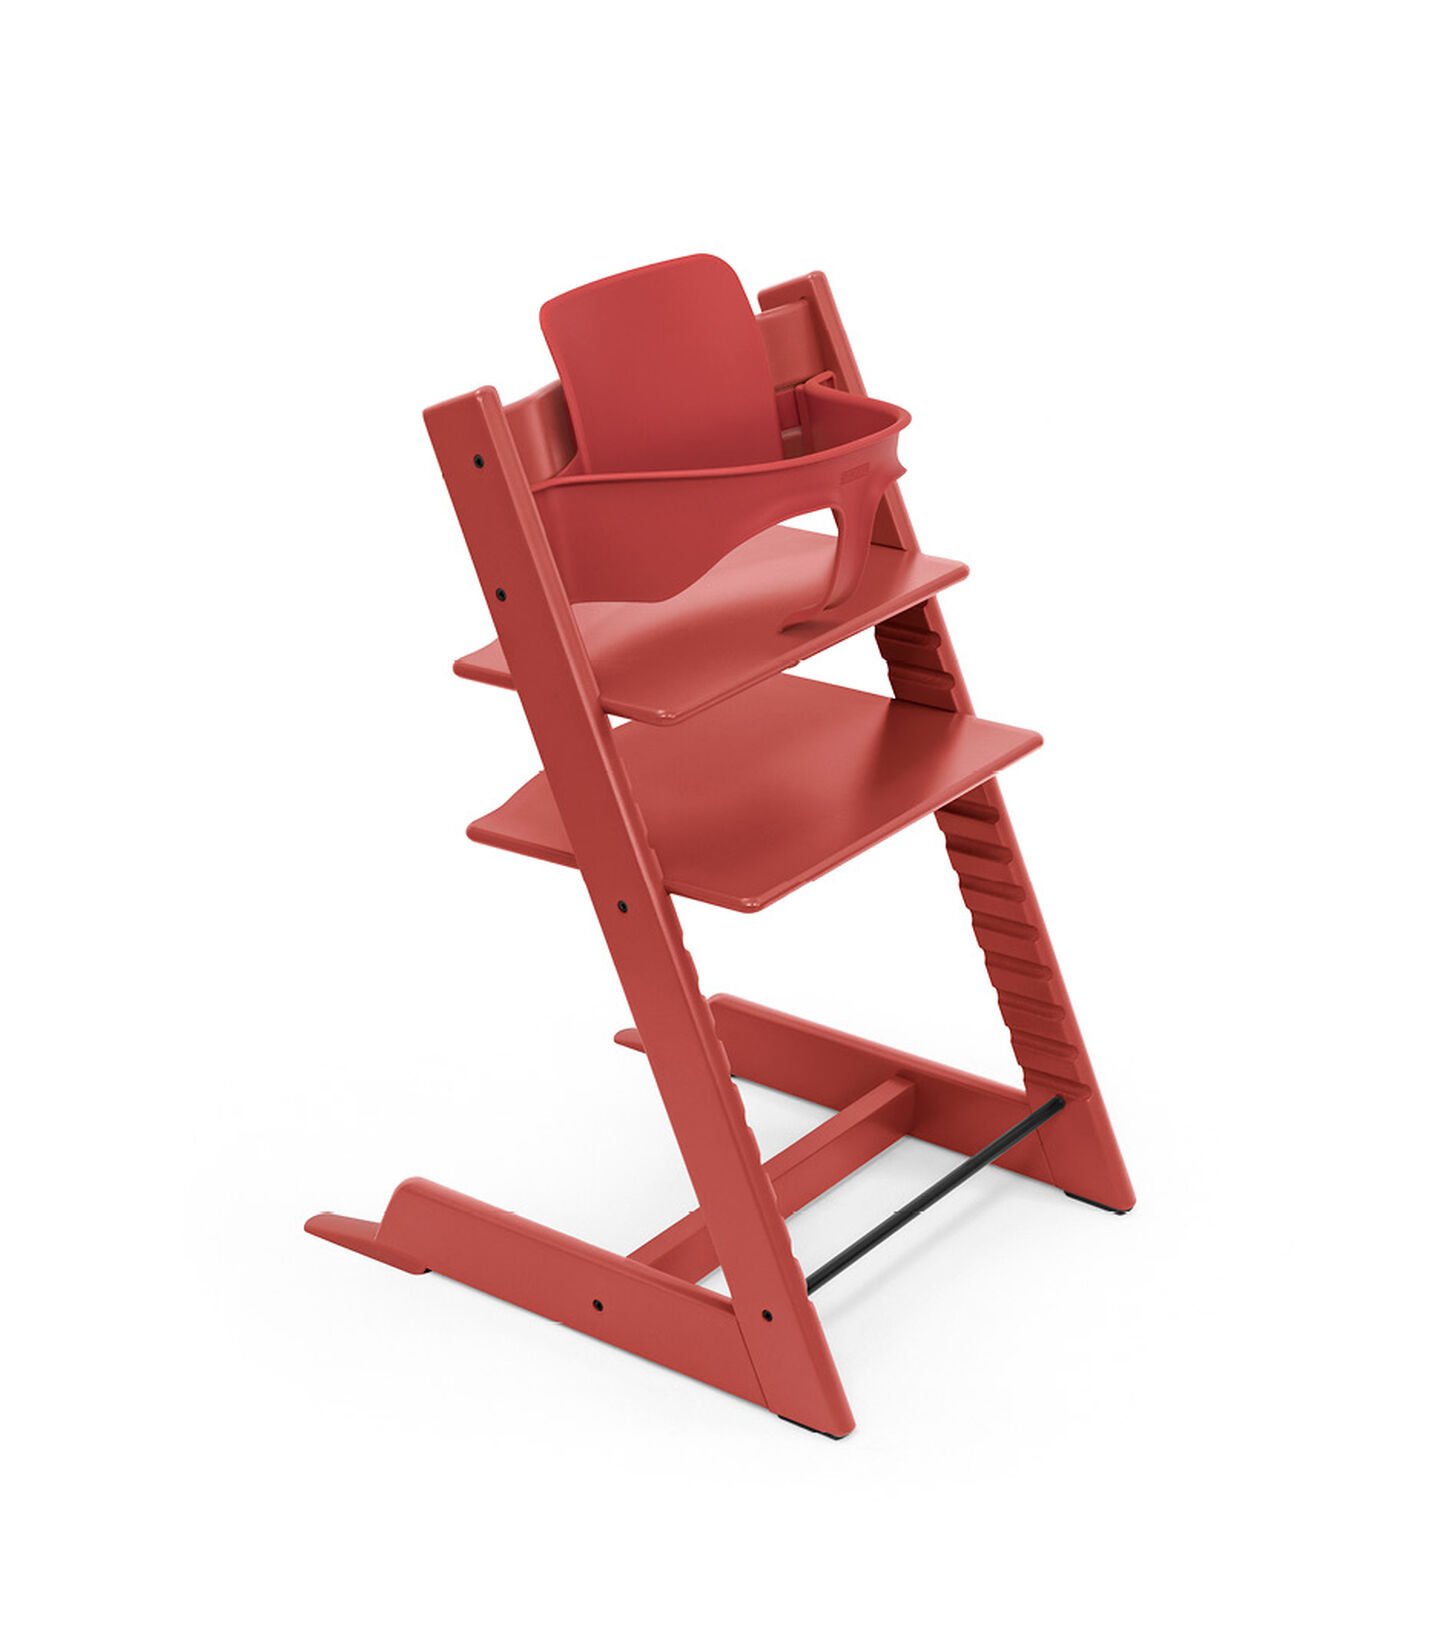 Tripp Trapp® Chair Warm Red, Beech, with Baby Set. view 2